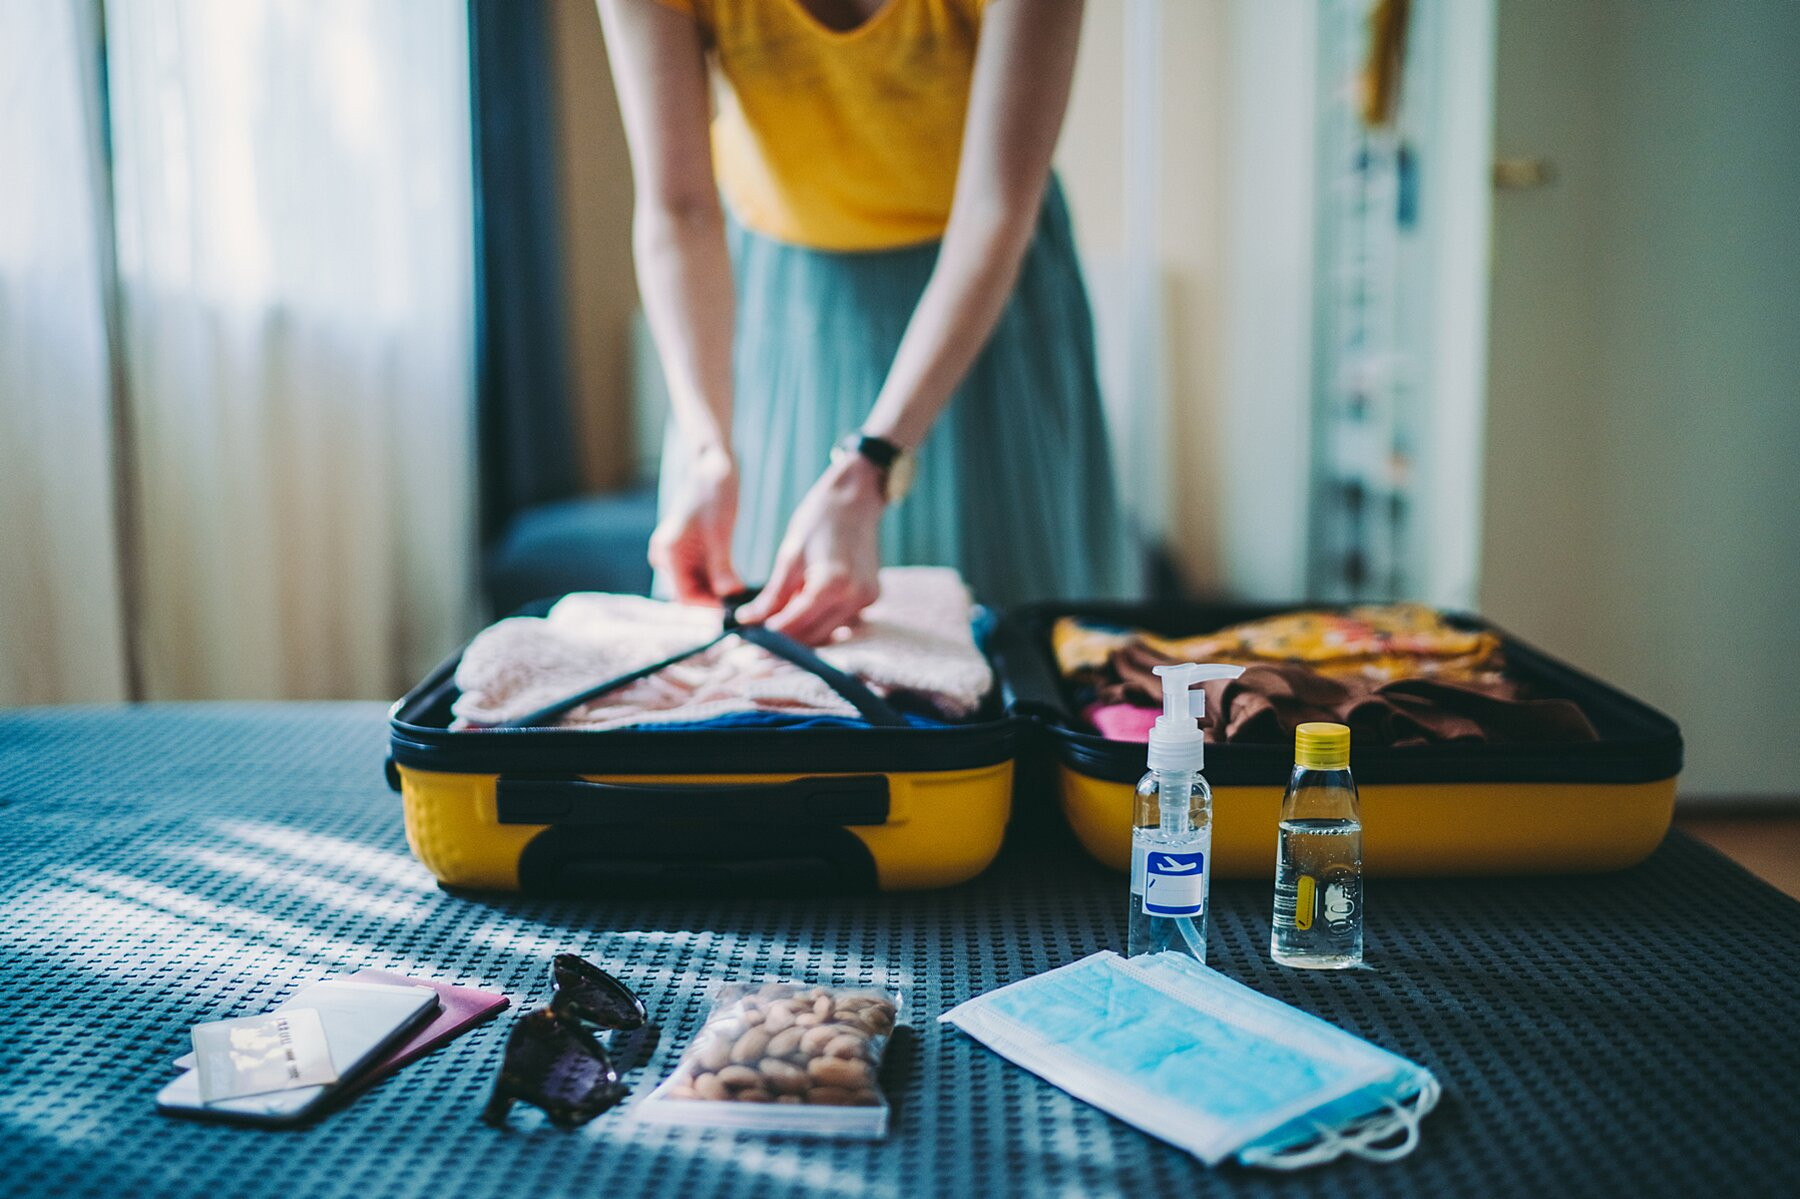 Pack While Traveling The World